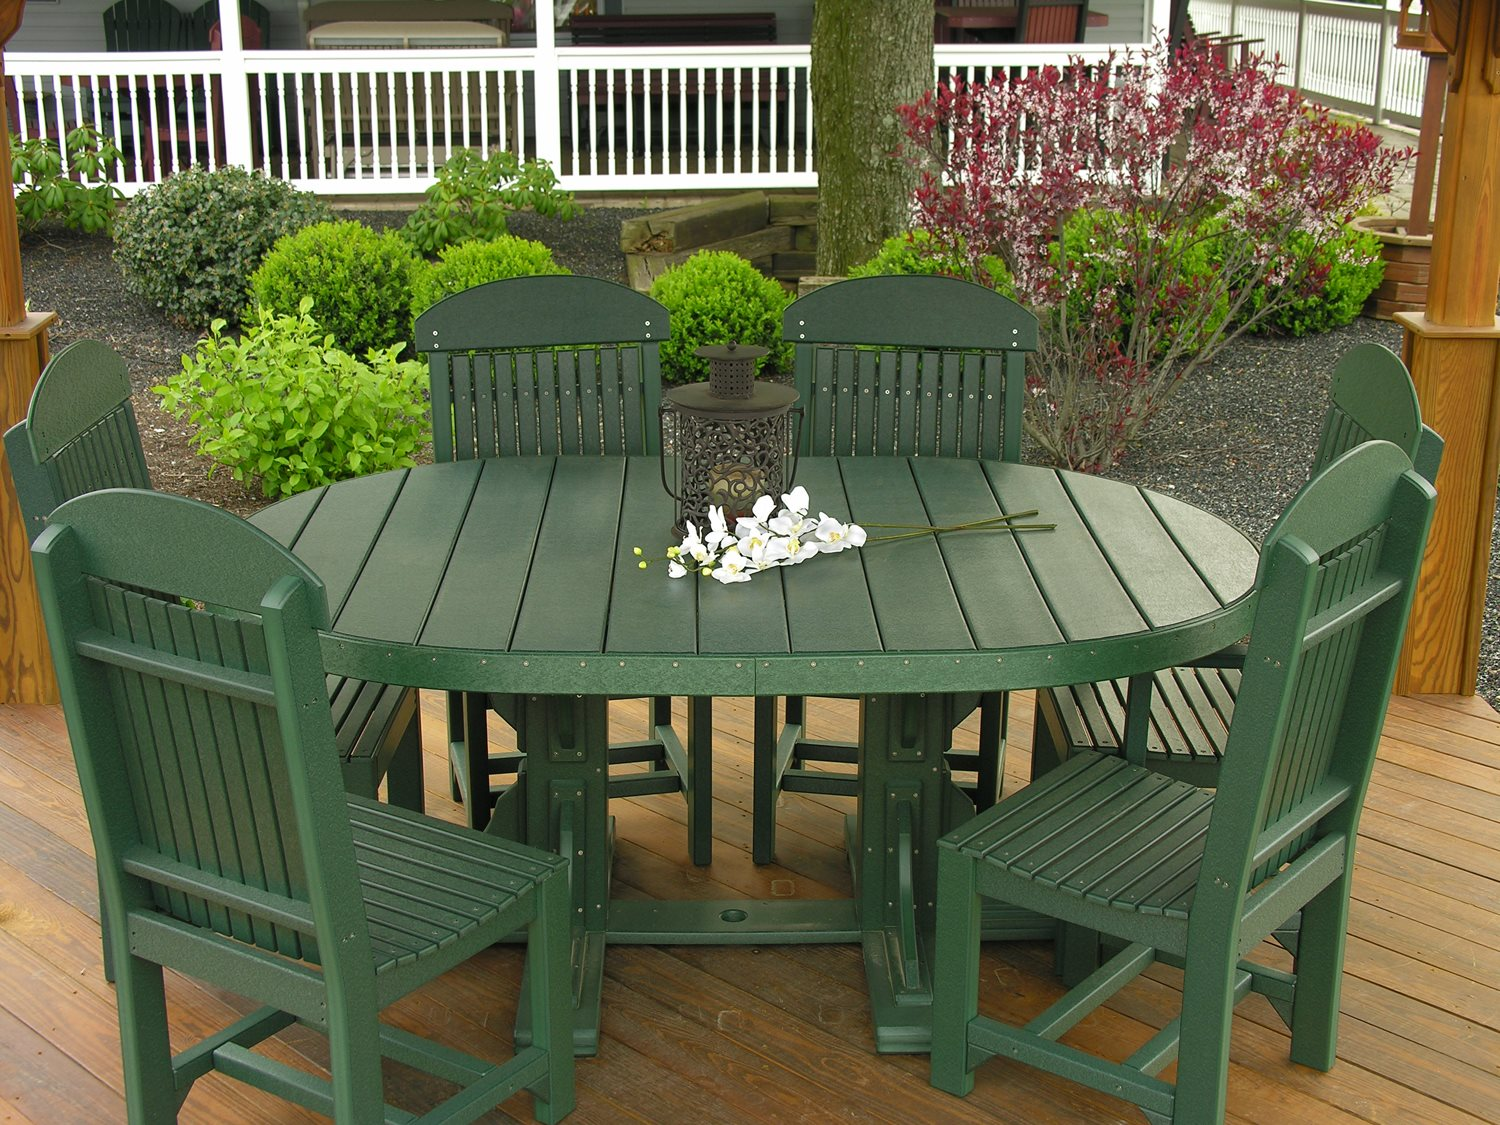 LuxCraft Recycled Plastic Dining Set   P46OT-DININGSET3